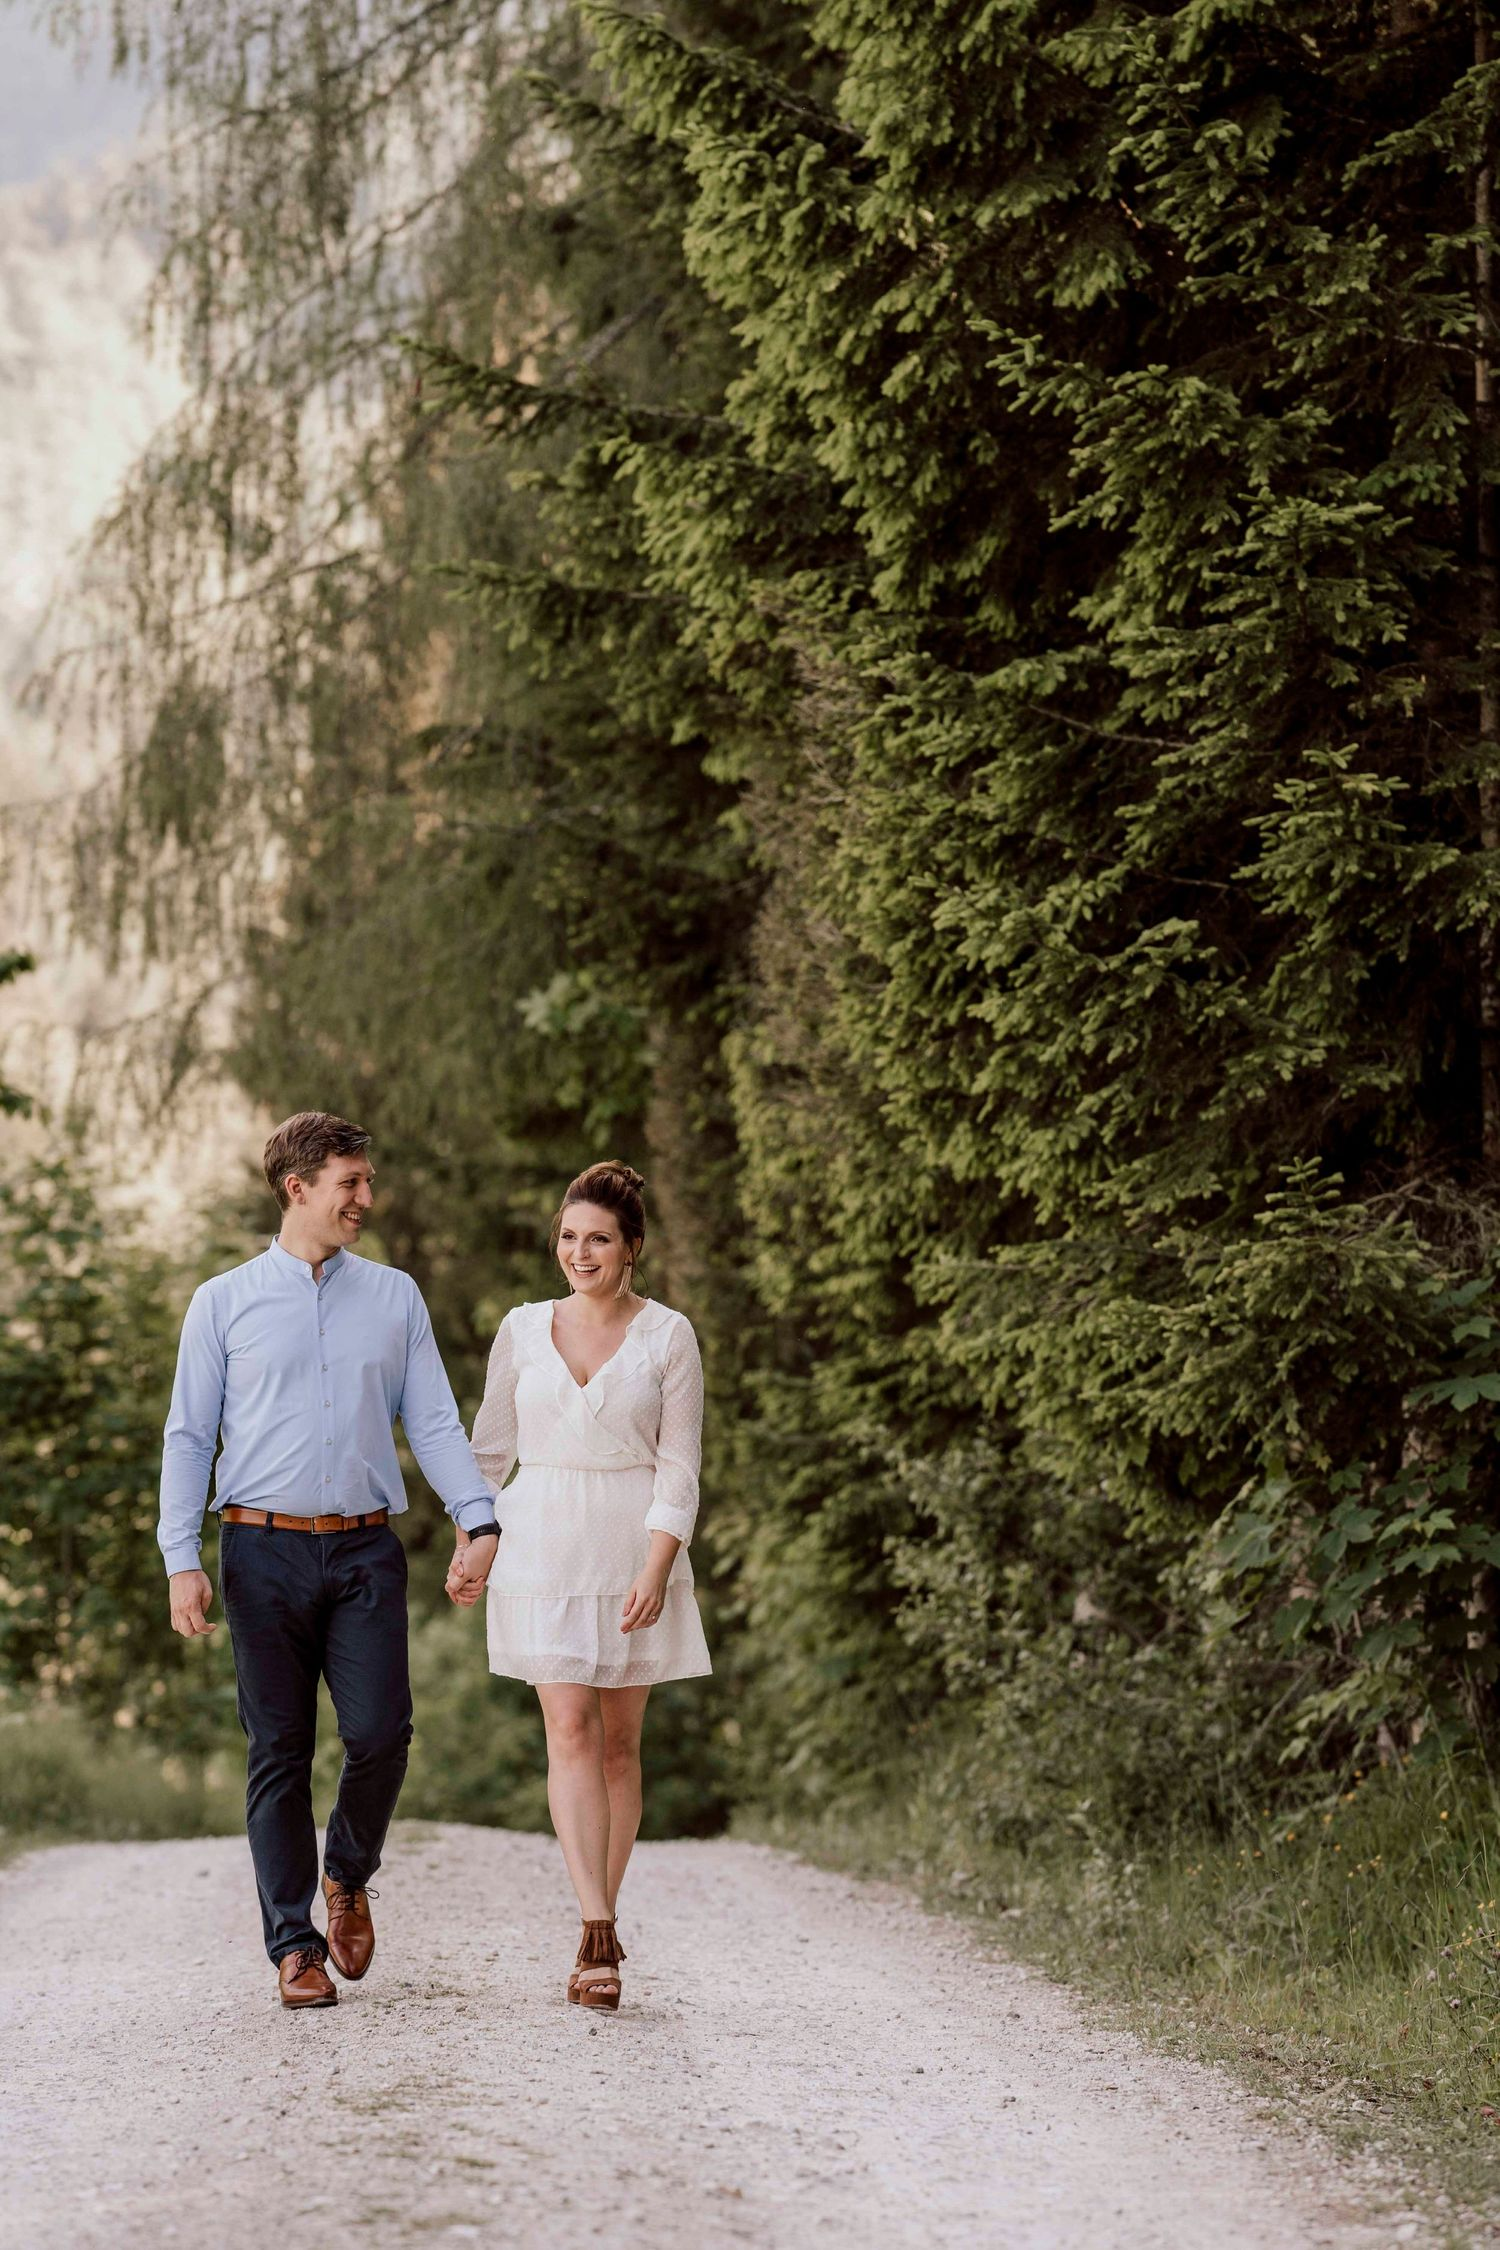 romantic couple walking on a path along a forest